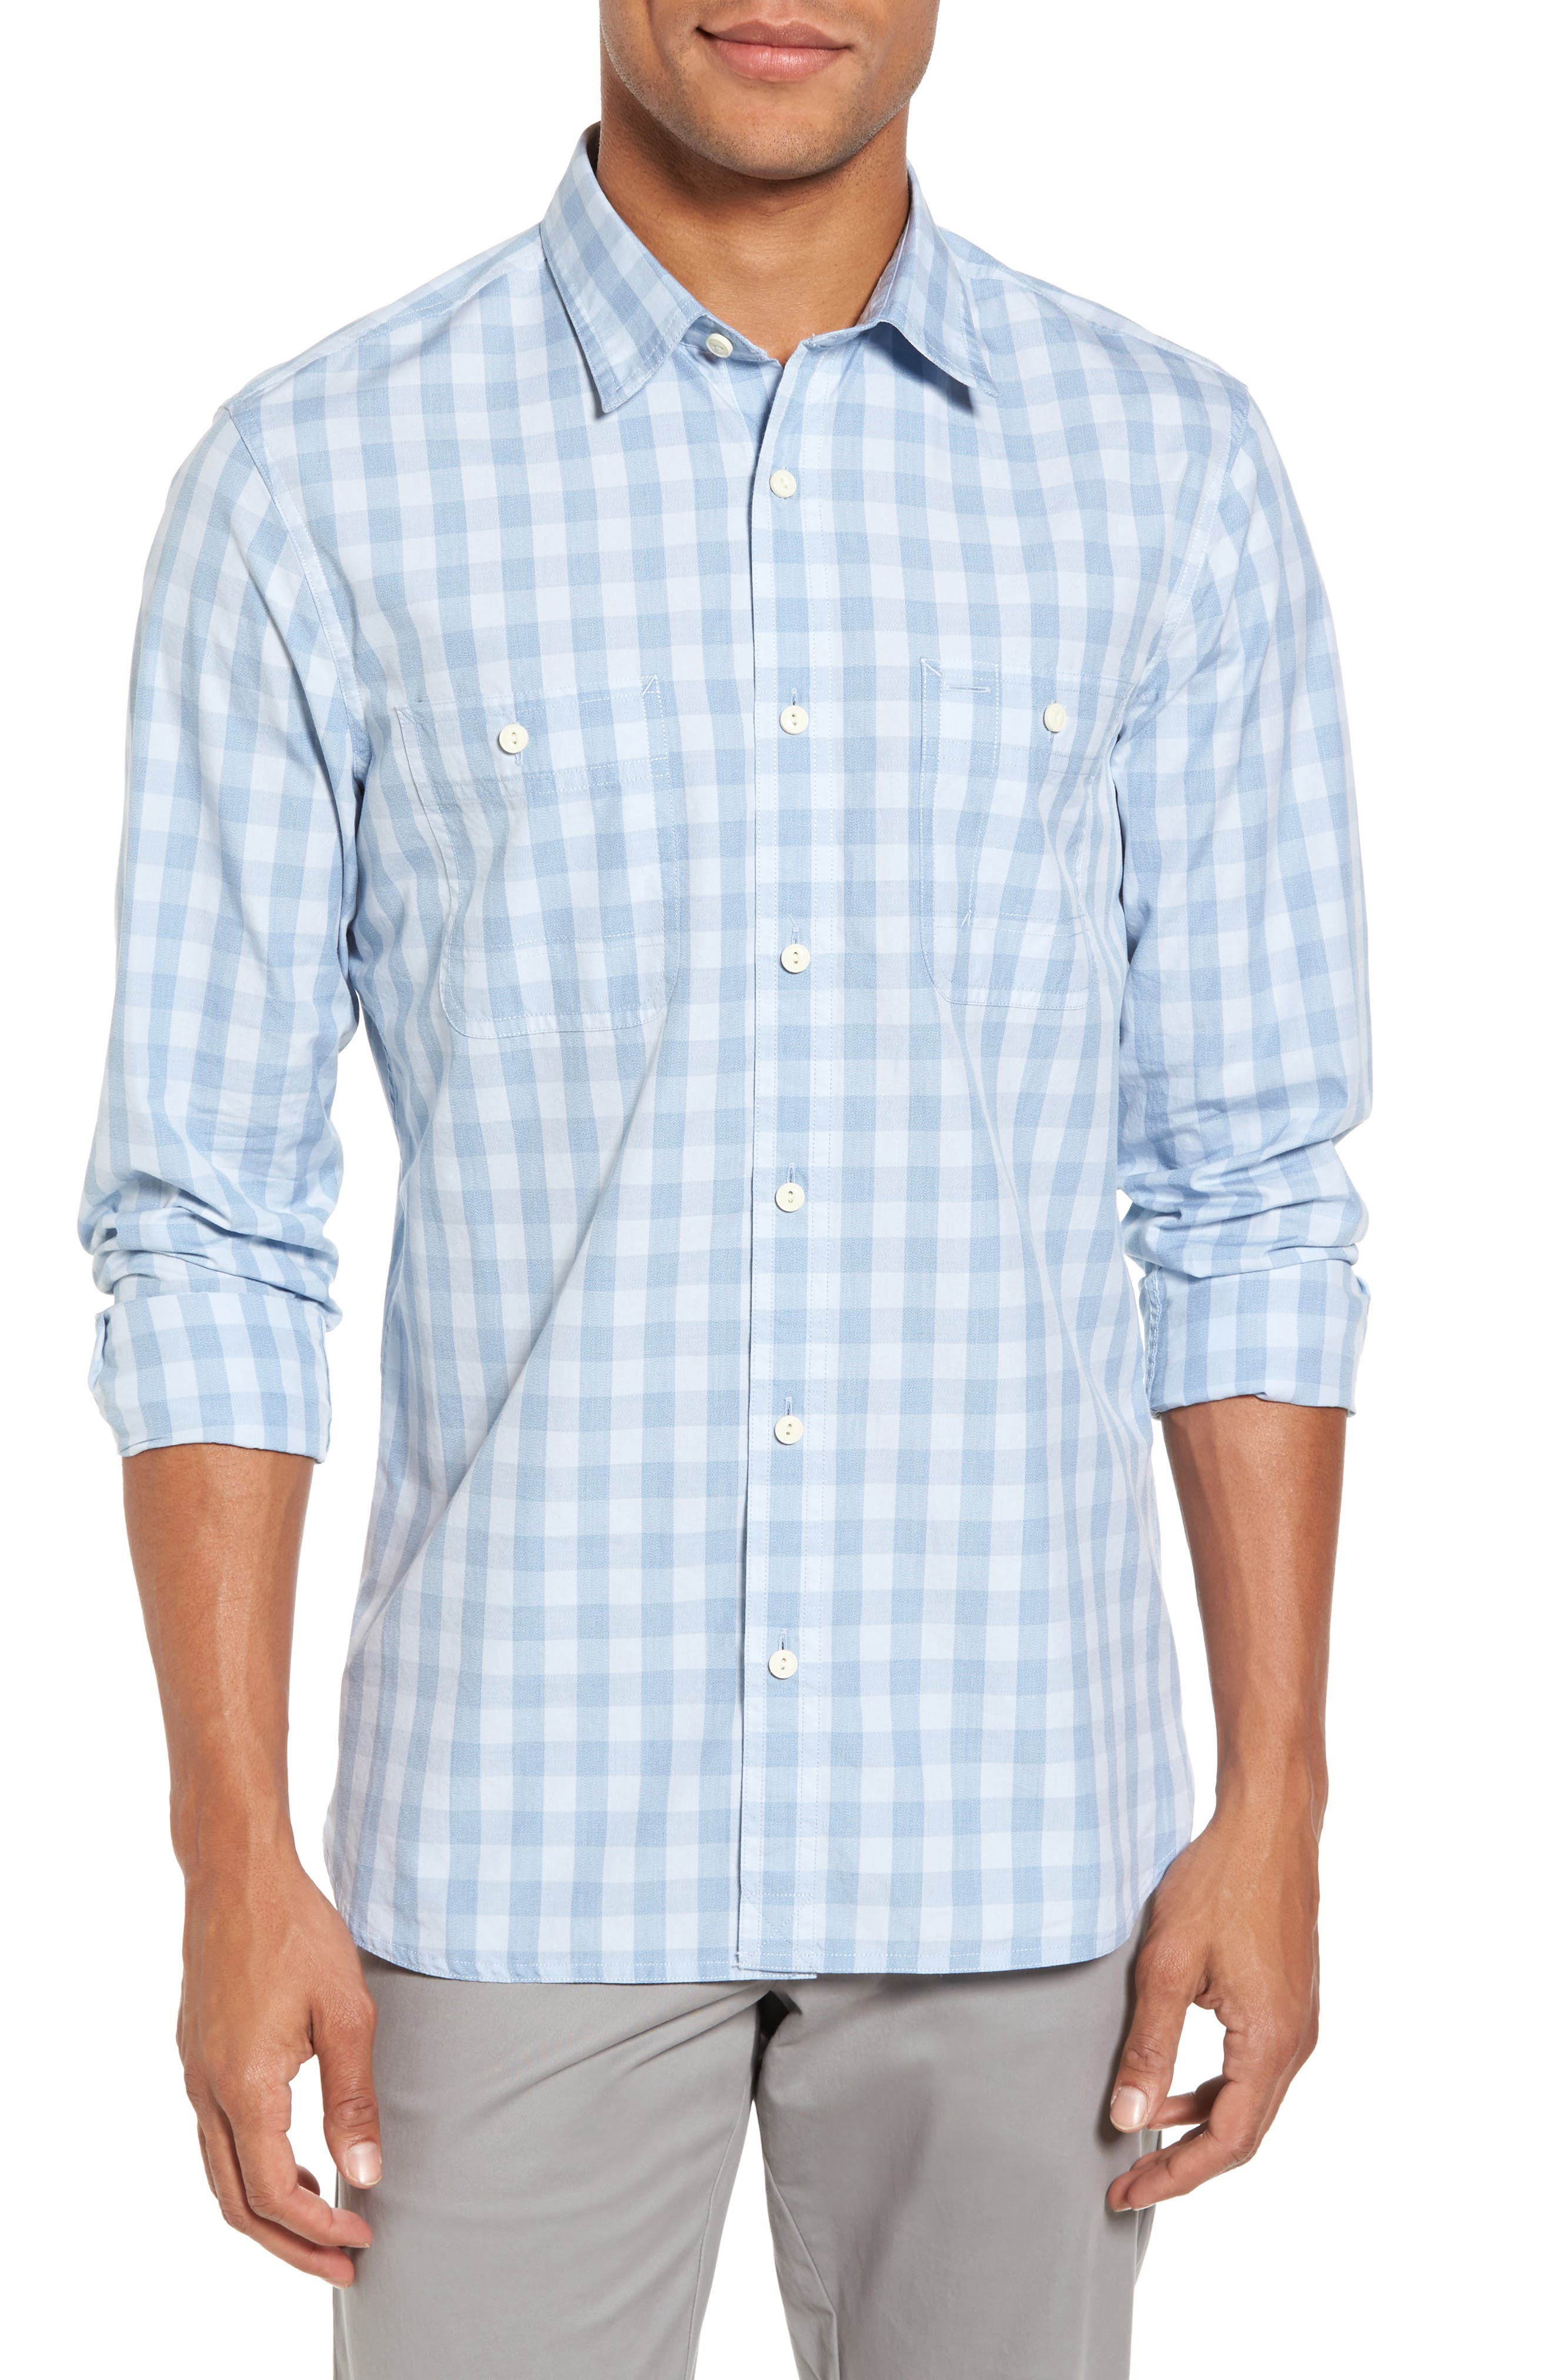 Trim Fit Washed Check Workwear Shirt,                         Main,                         color, Blue Cashmere Check